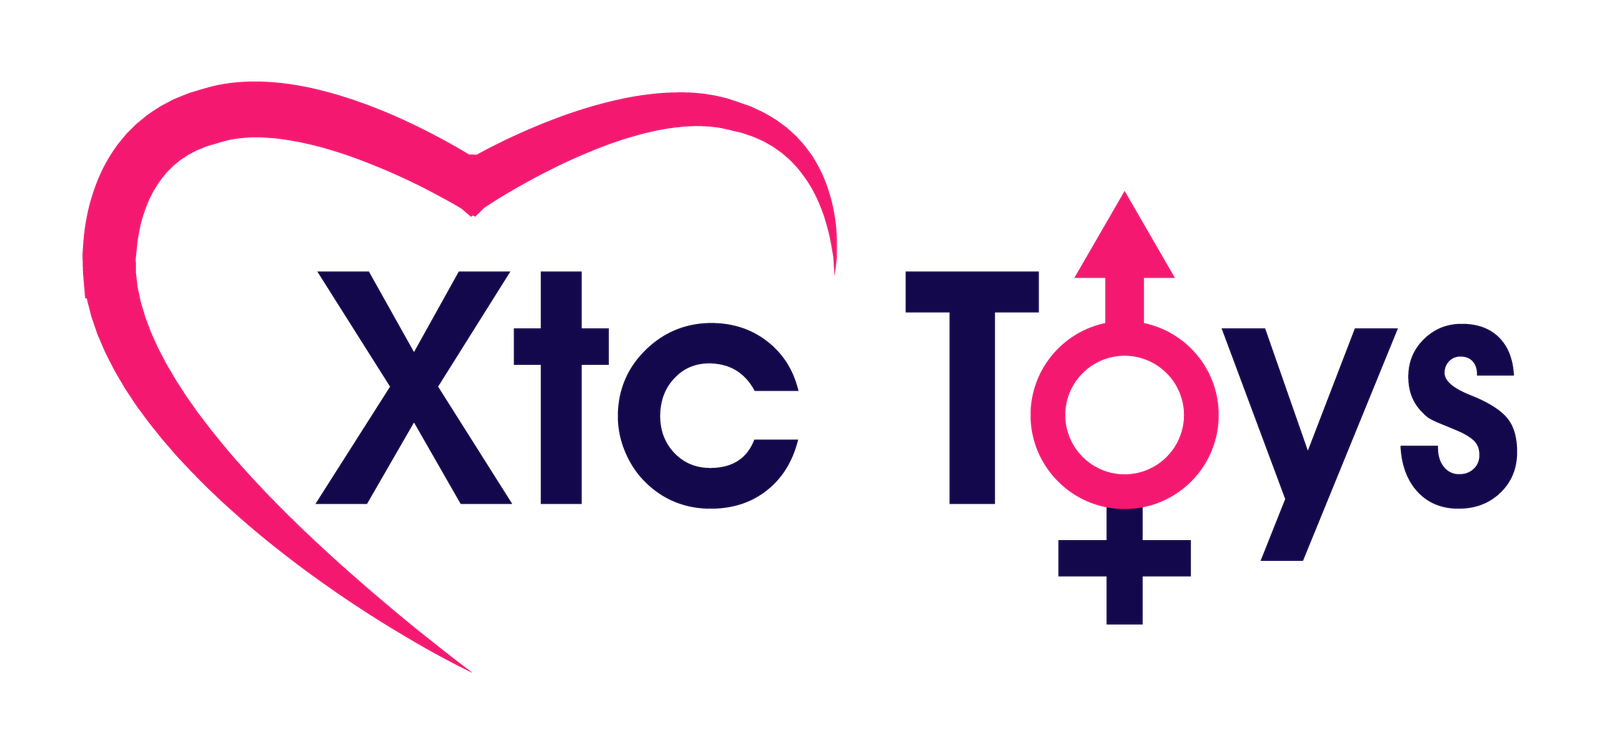 Xtc toys Lingerie,Lubes and Gifts